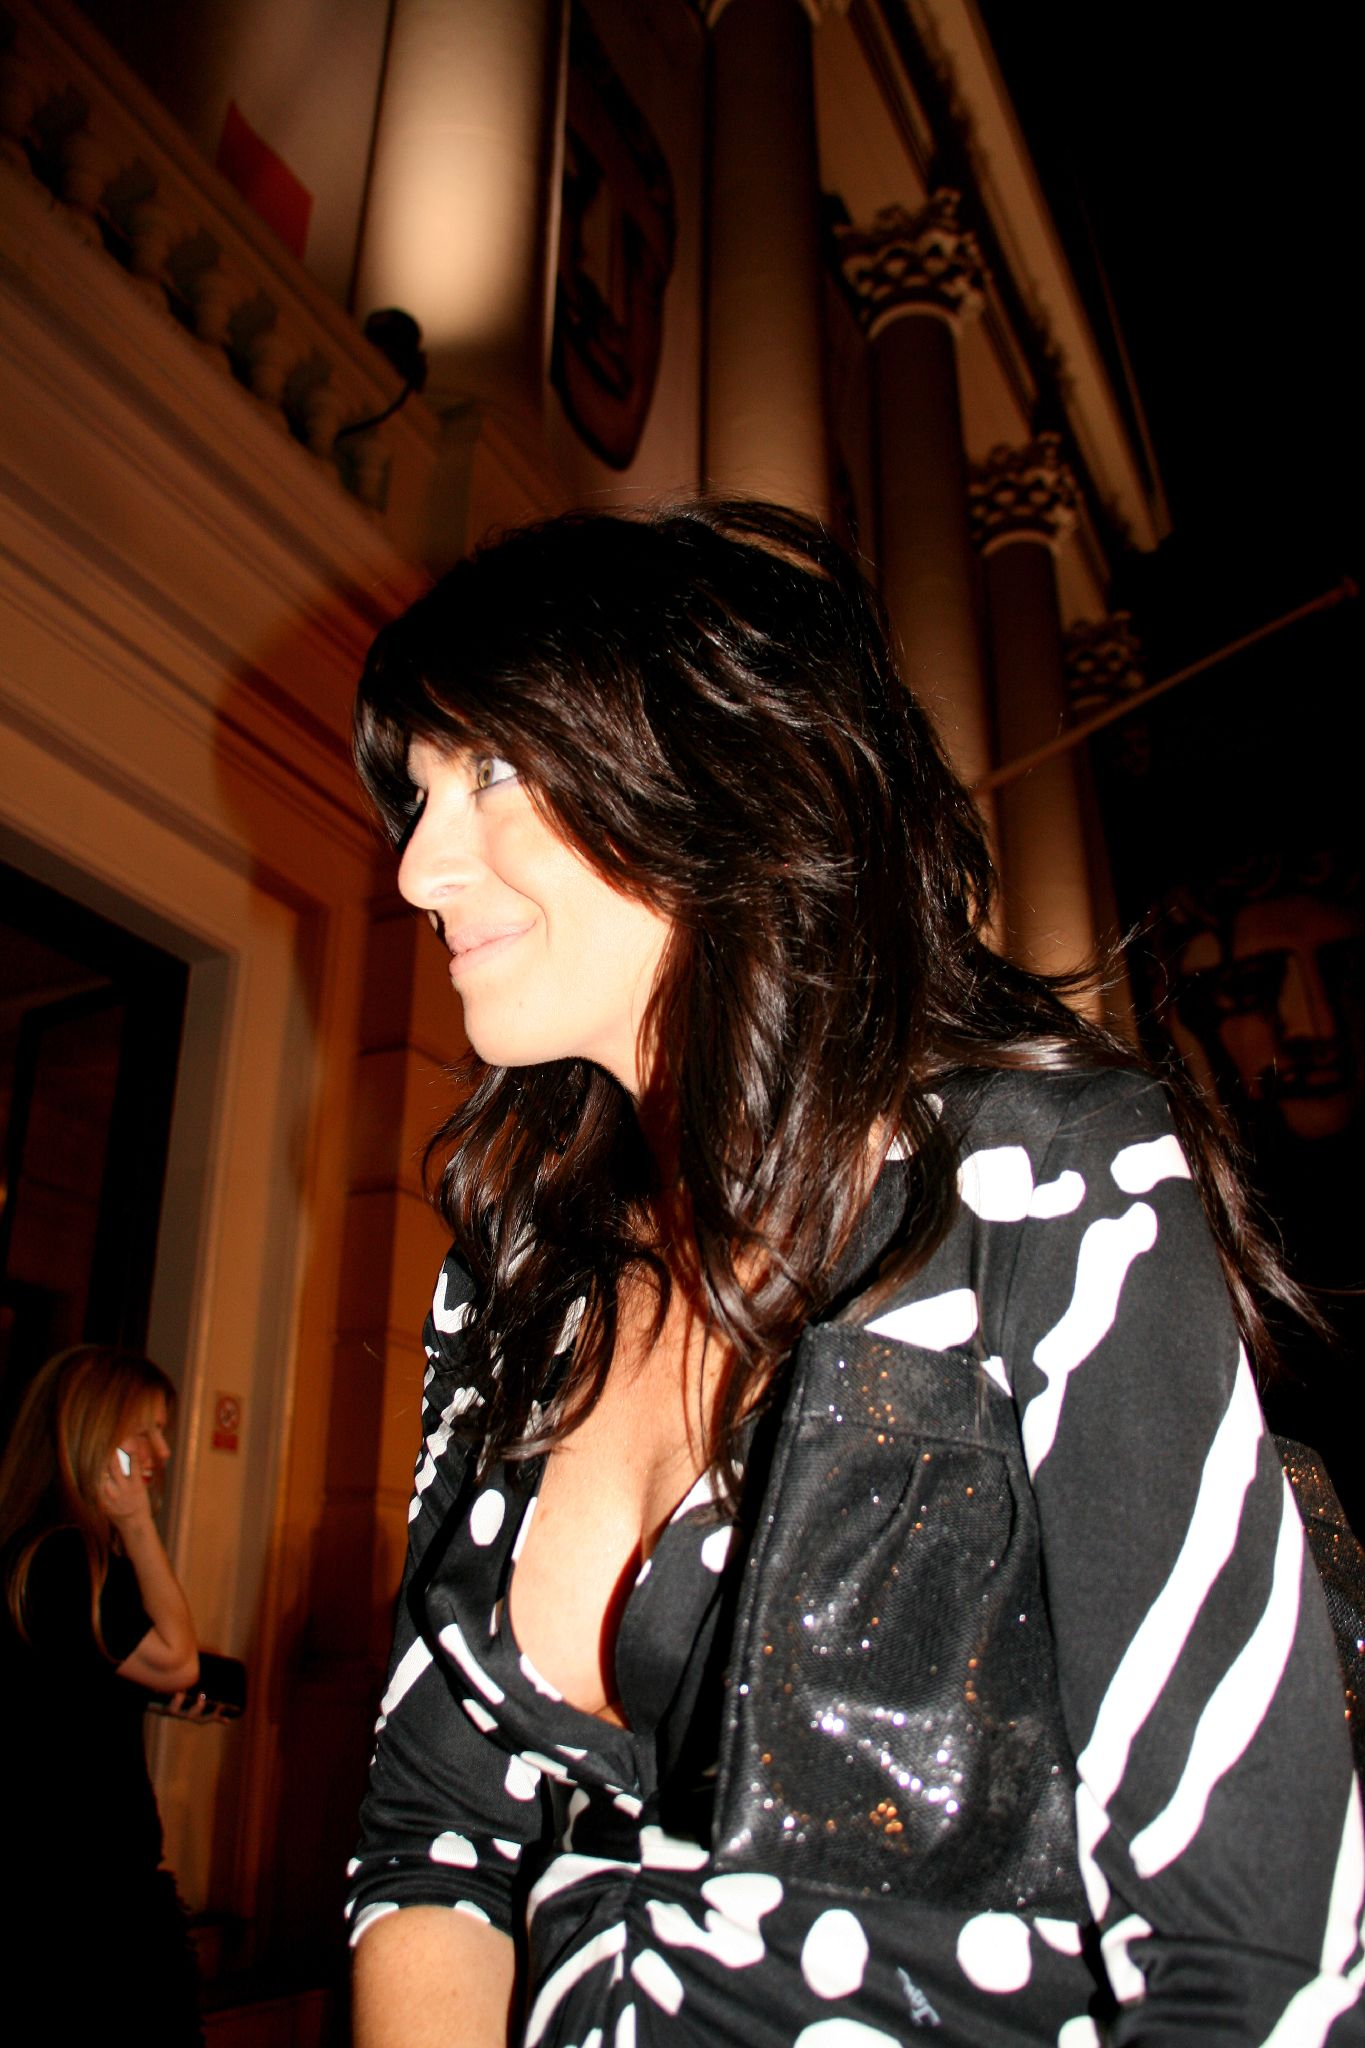 Hot Claudia Winkleman nude (79 foto and video), Tits, Hot, Twitter, legs 2015